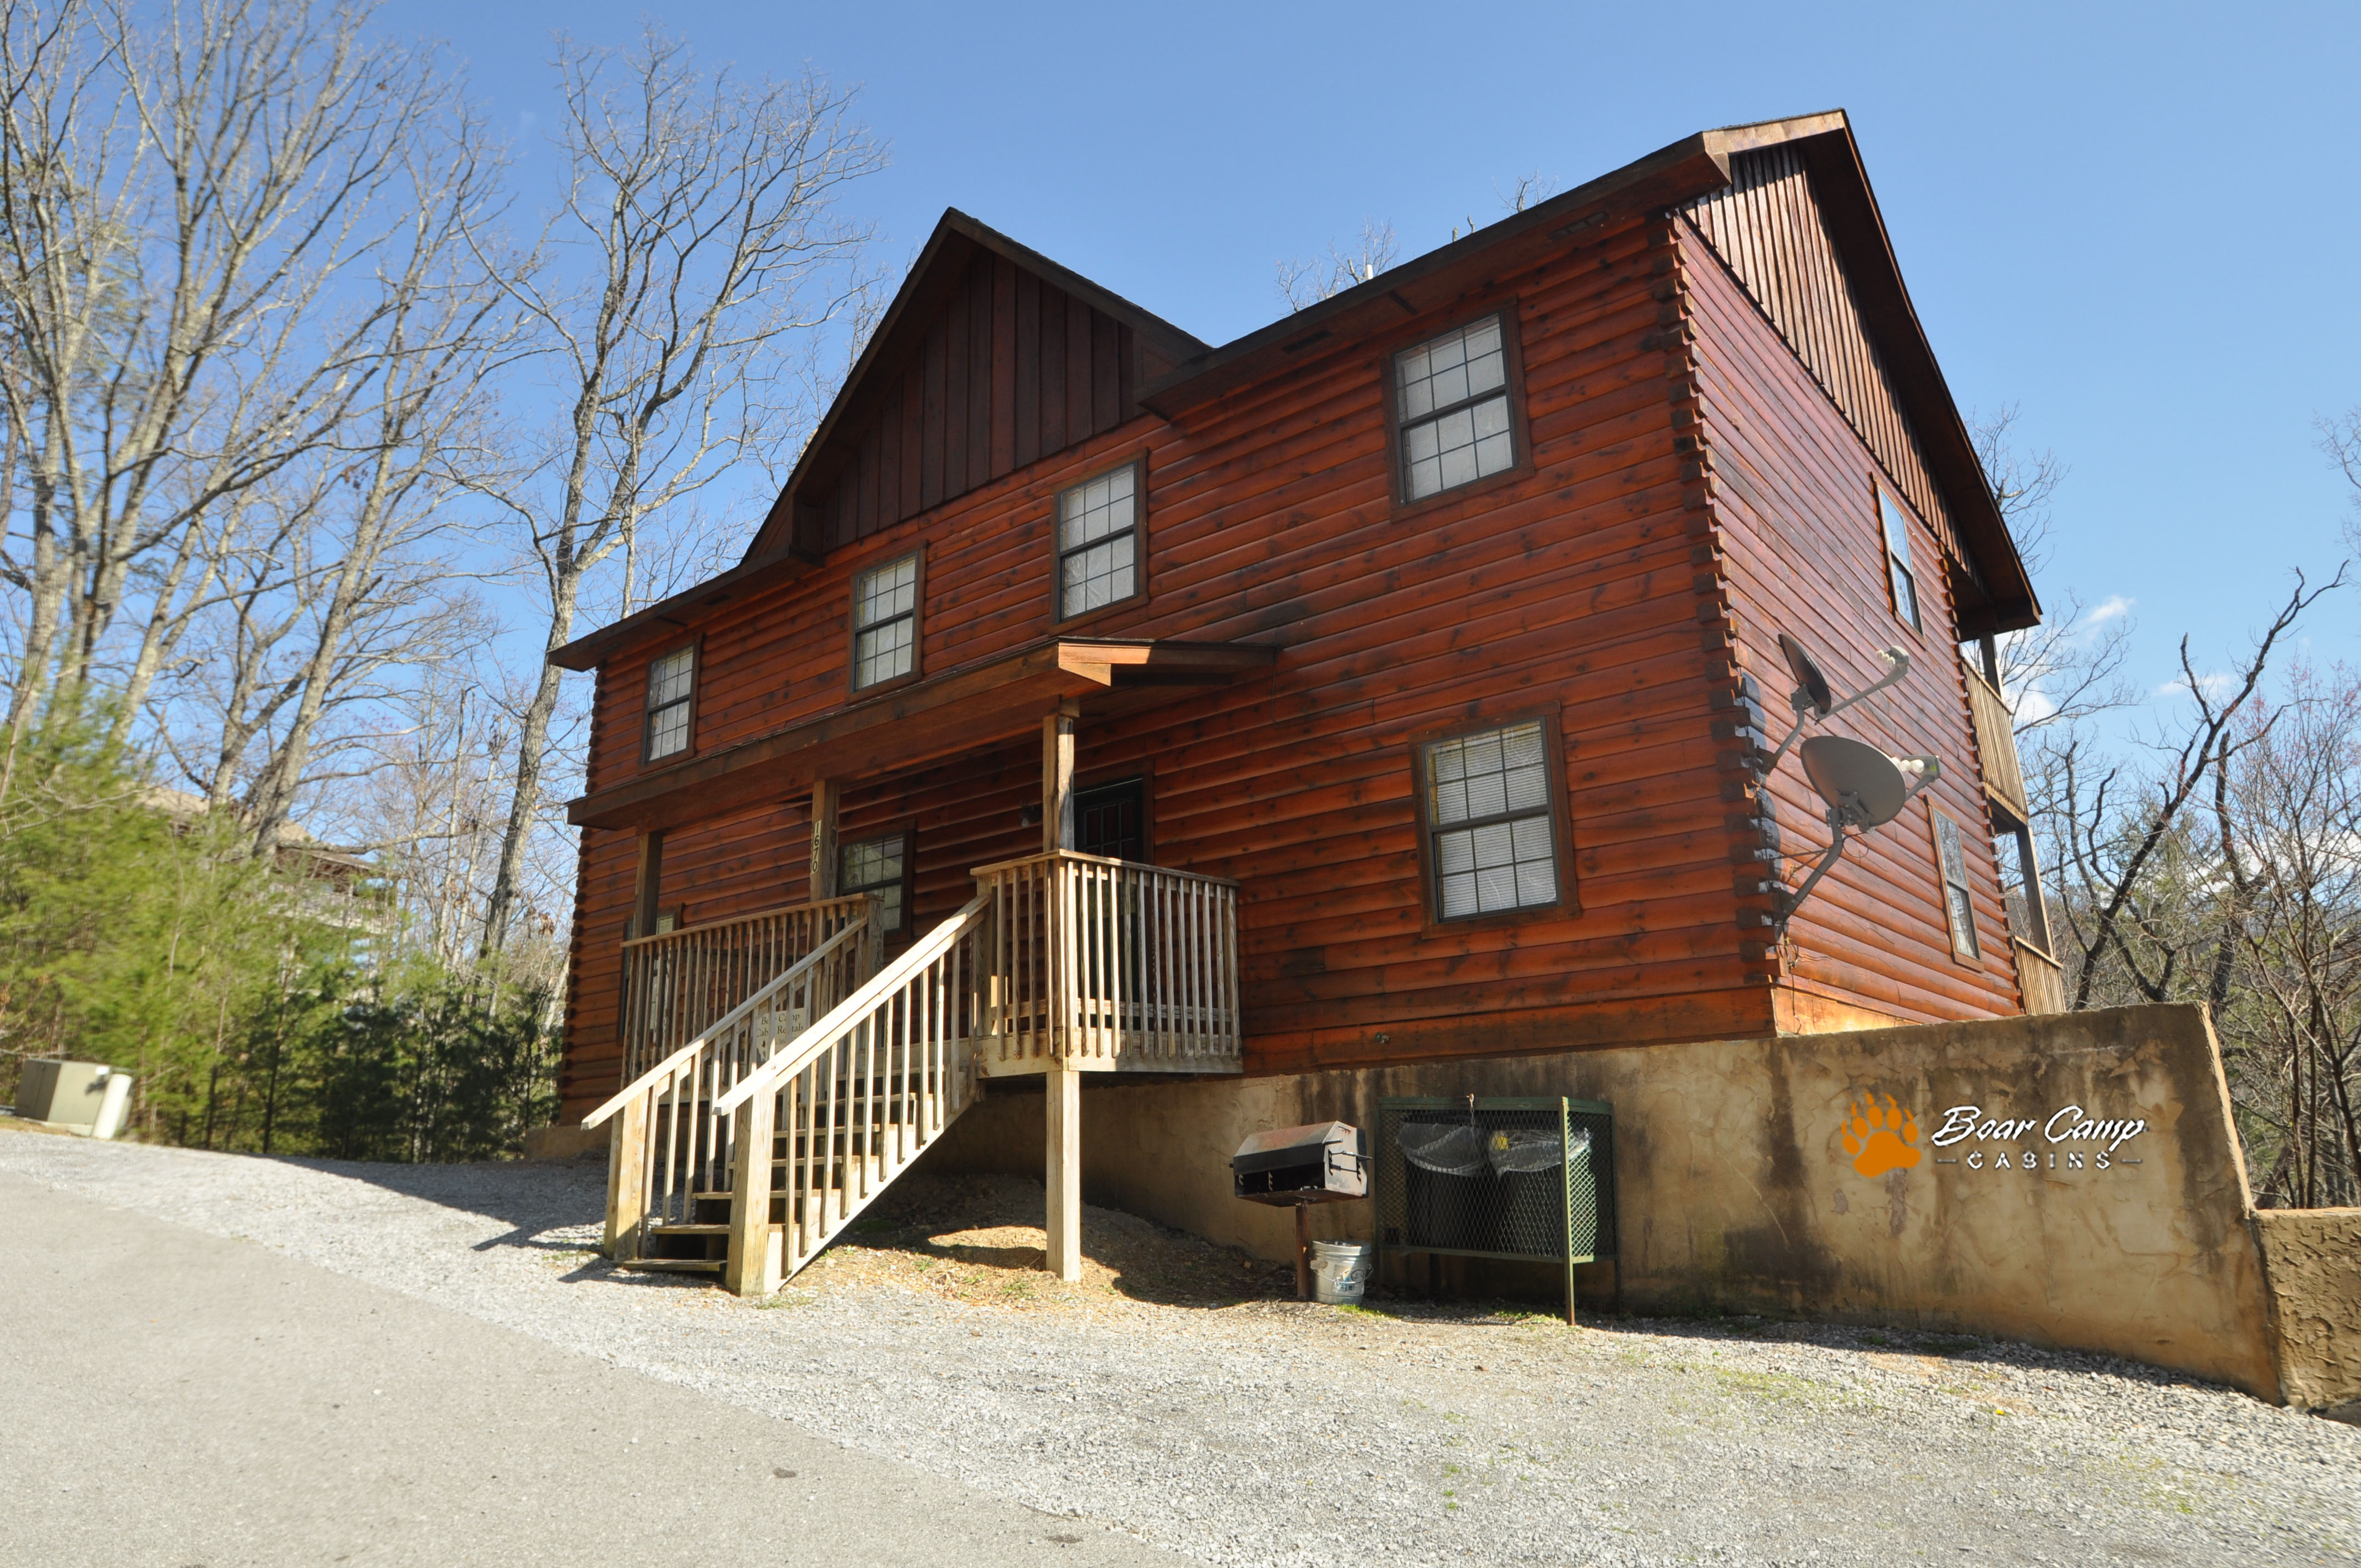 tennessee tn smokey cabins rentals in a gatlinburg mountain cabin smoky laurel bedroom chalets cottage